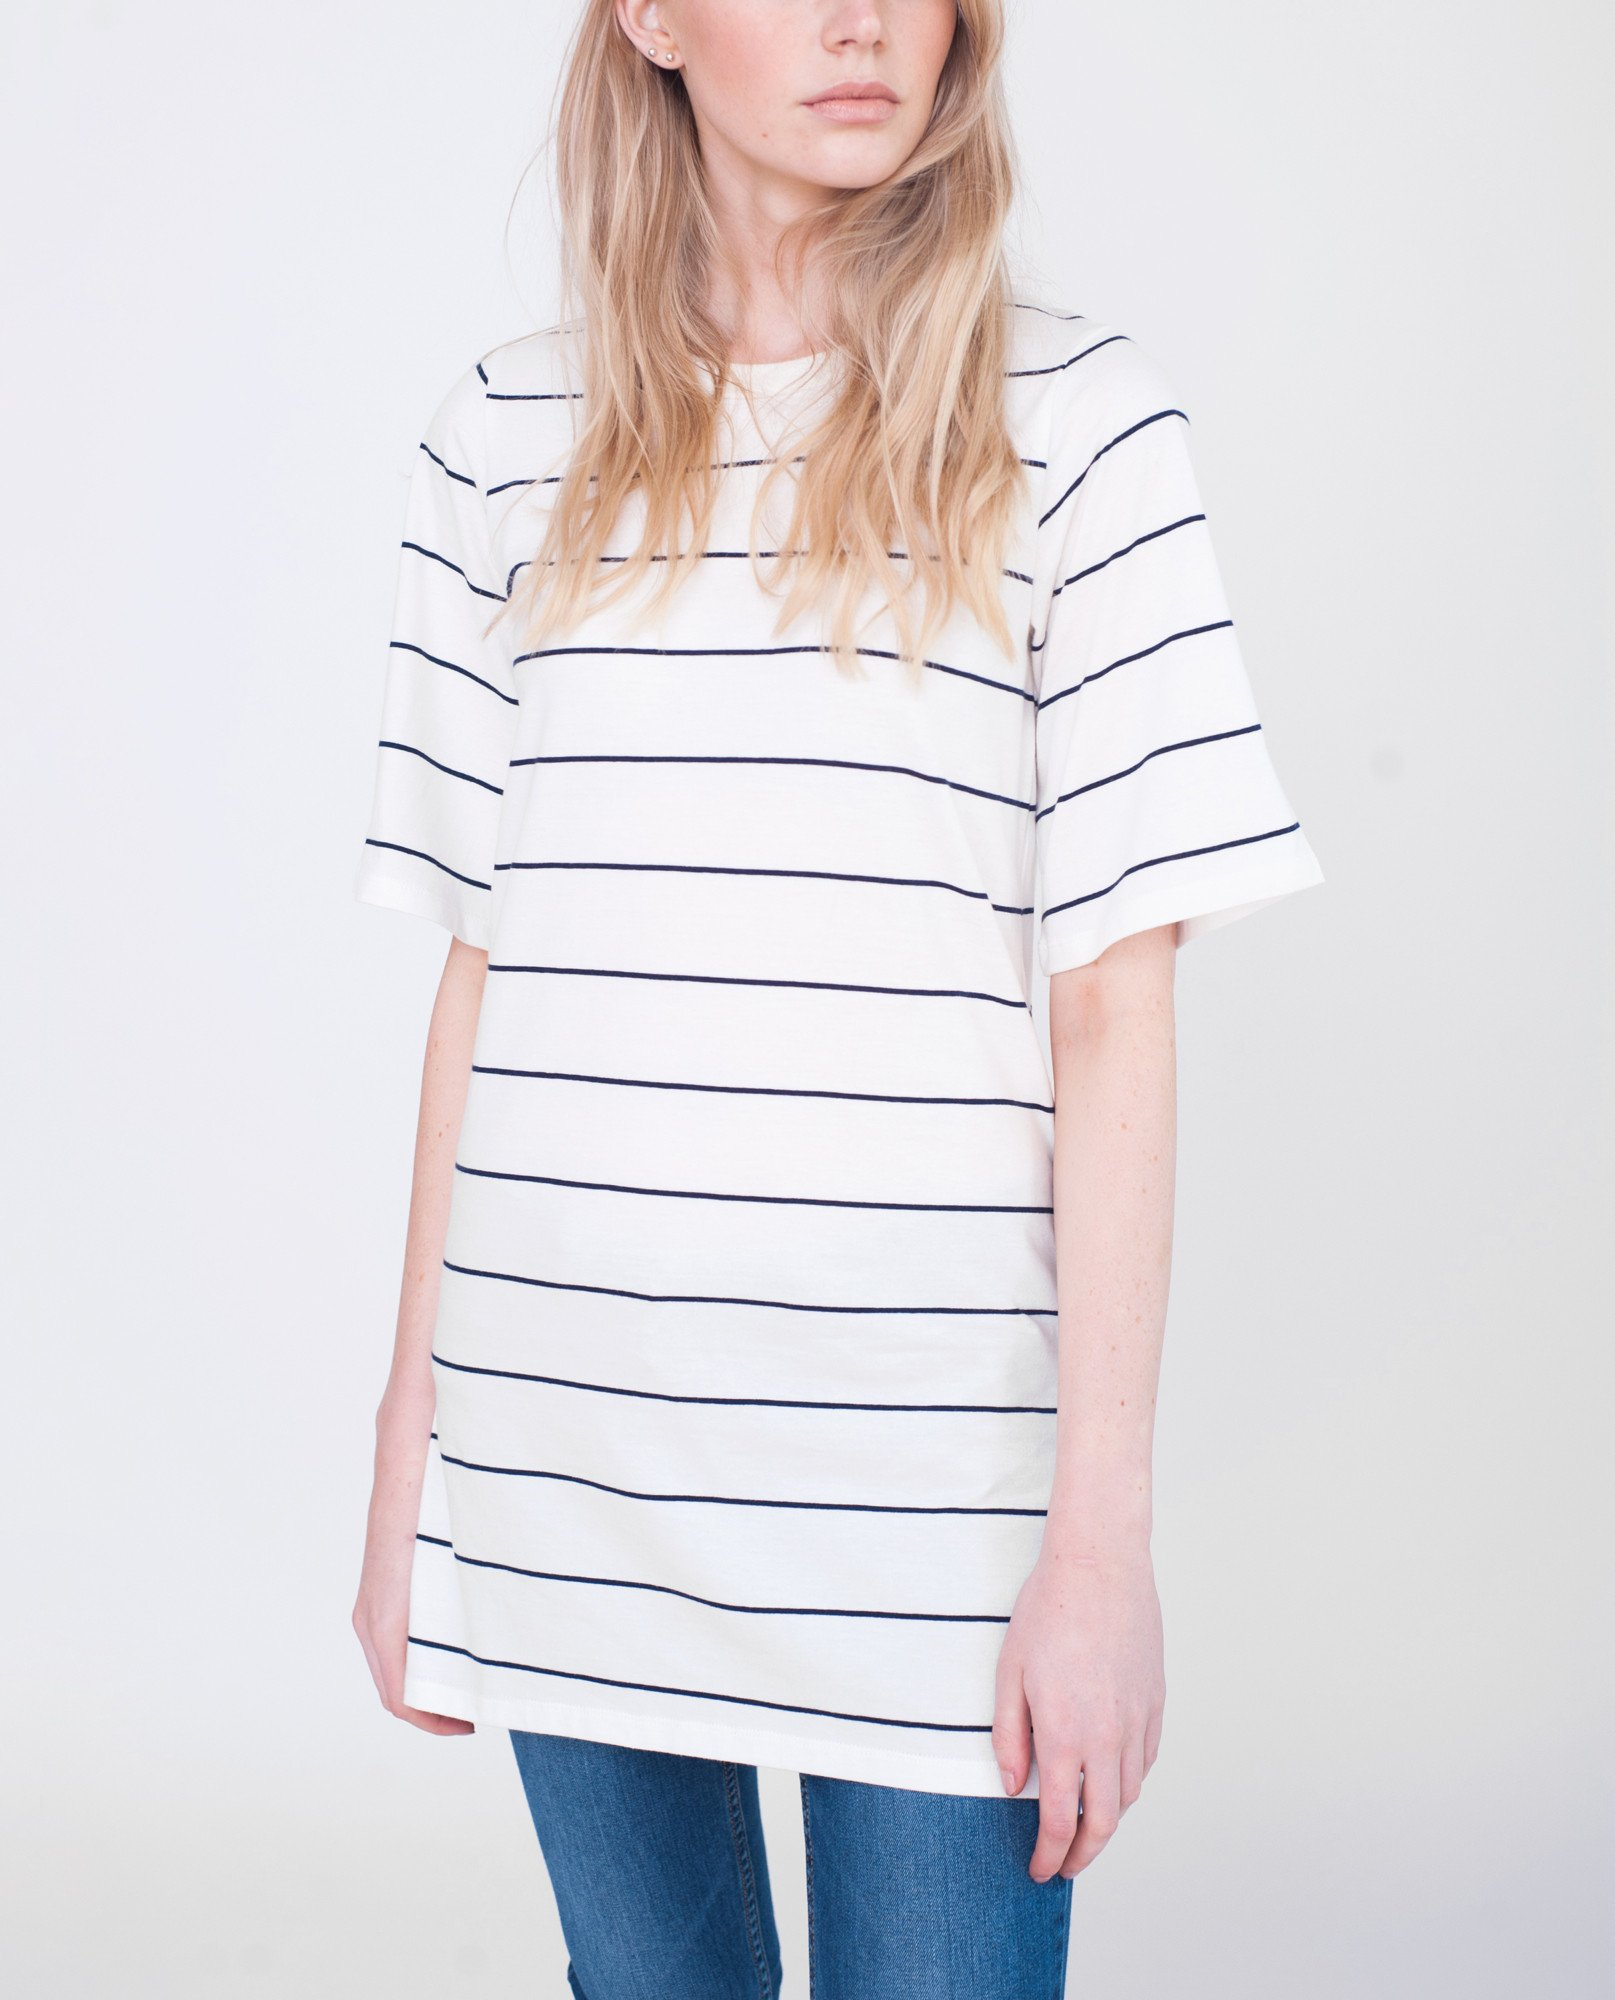 SAVANNAH Organic Cotton Tshirt In Off White And Navy from Beaumont Organic